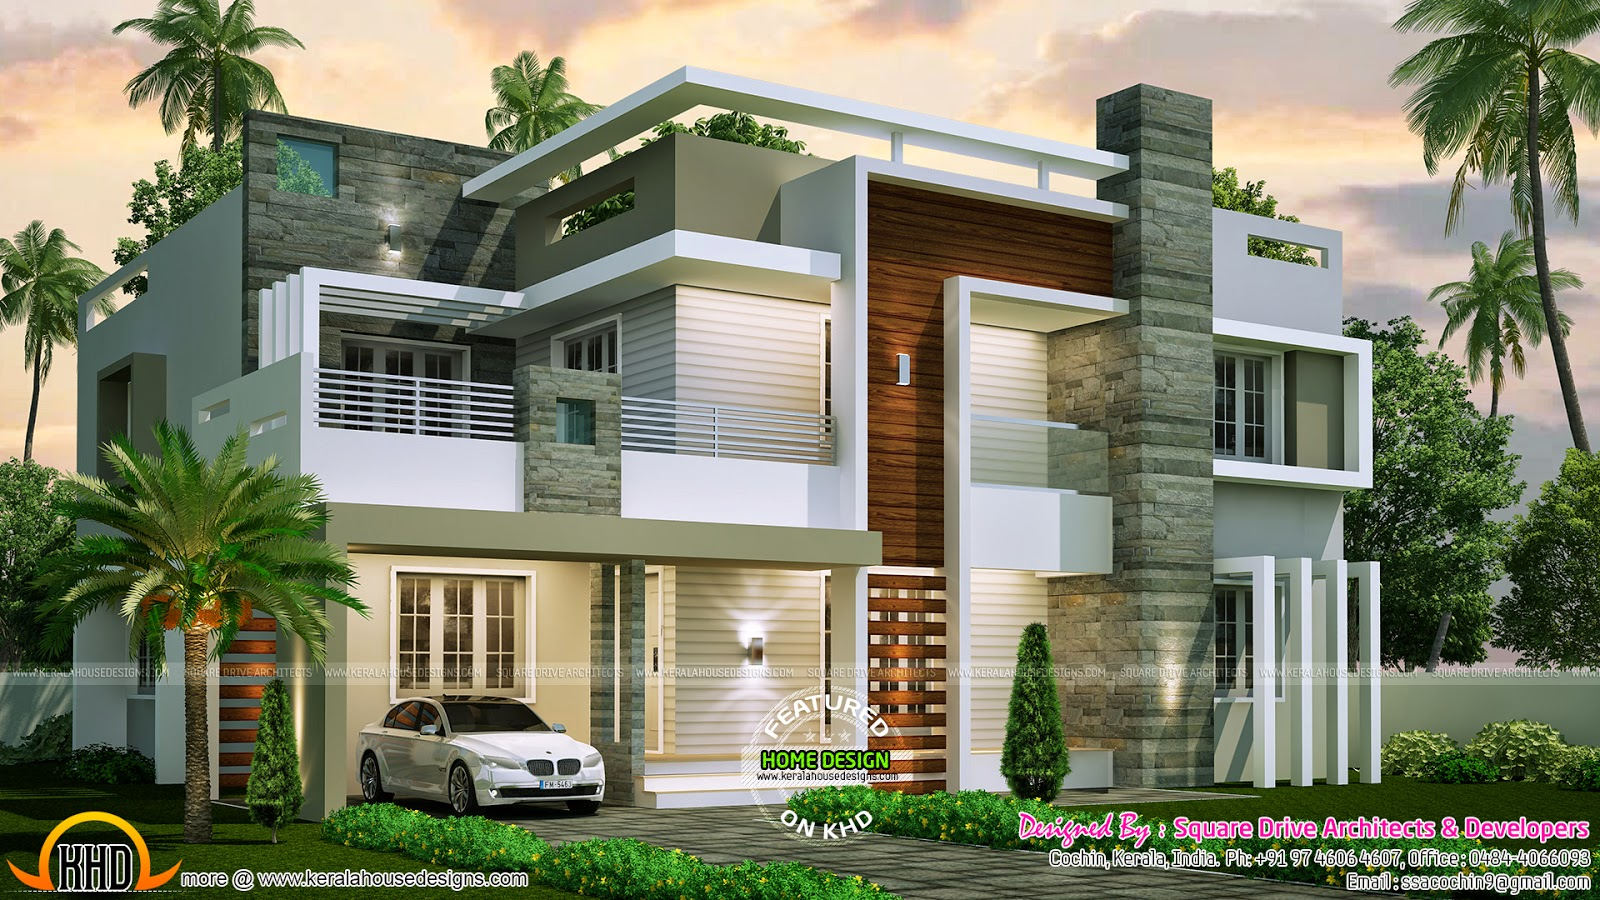 4 bedroom contemporary home design kerala home design and floor plans Home design